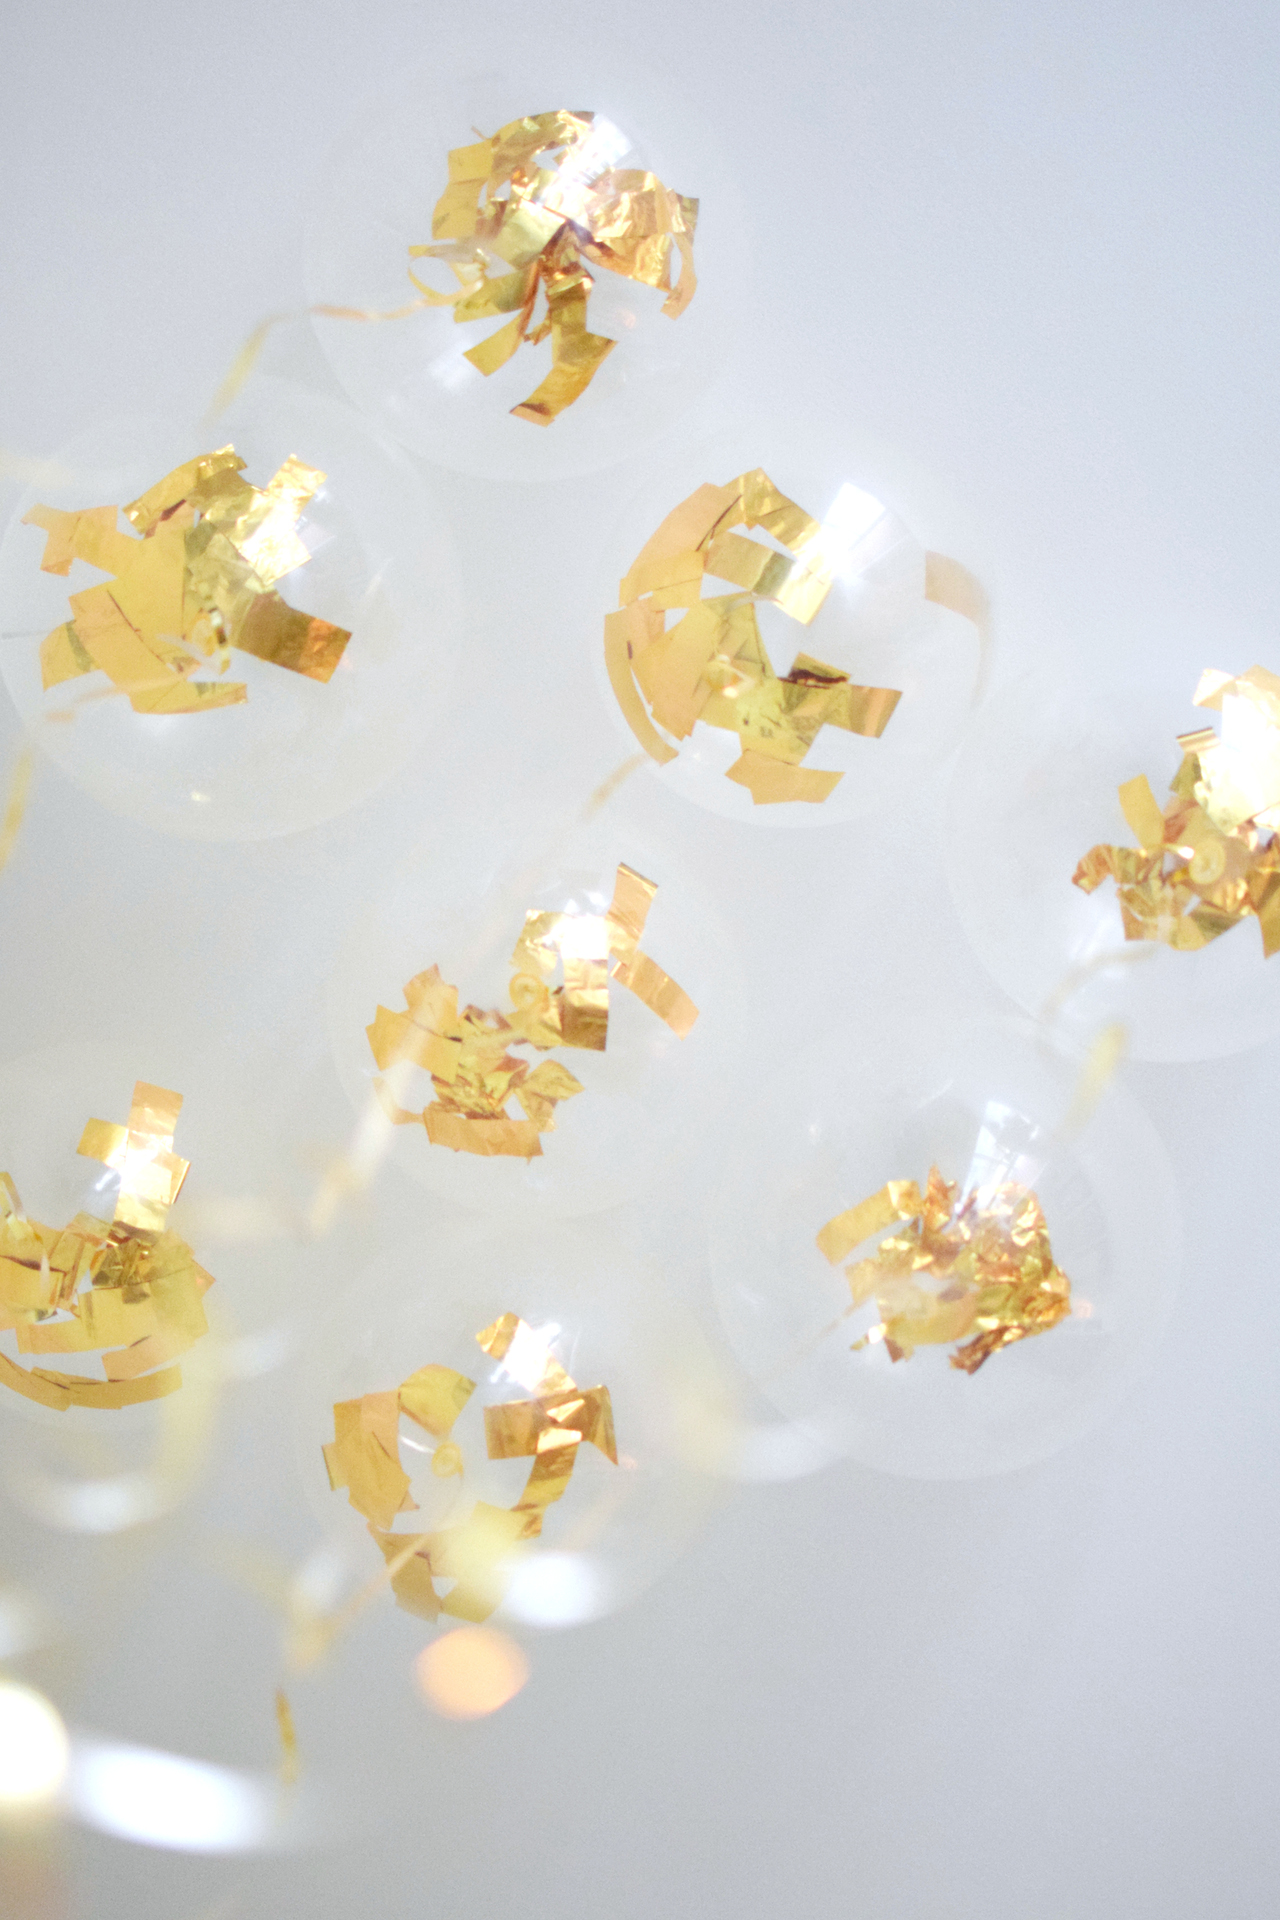 clear-balloons-with-gold-confetti-6